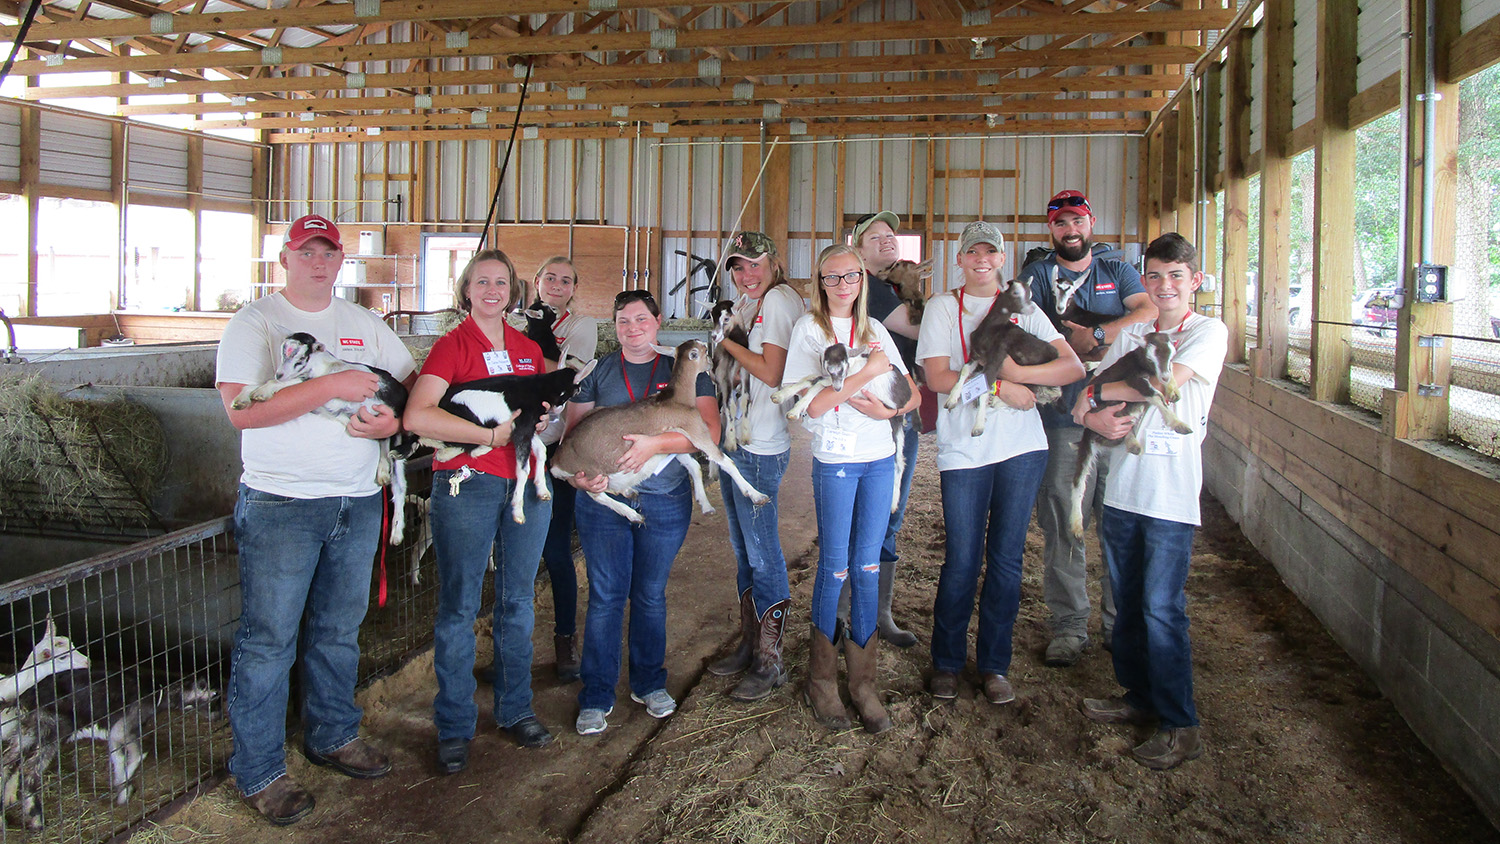 Participants of Livestock Science Camp holding animals.